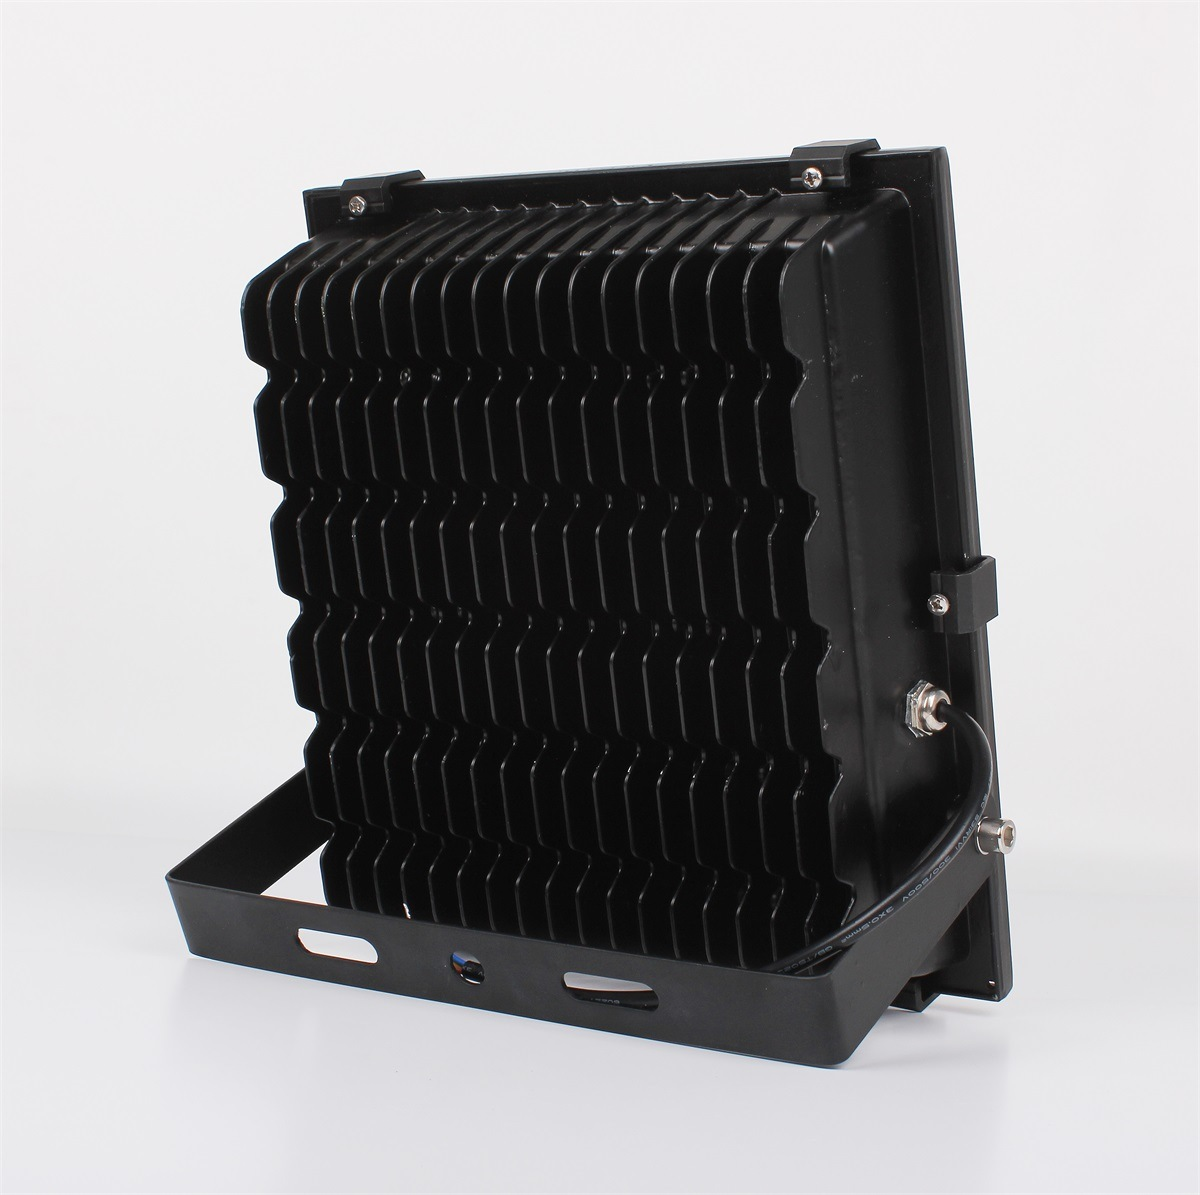 100W IP67 LED Floodlight, AC85-265V Compatible Ce RoHS